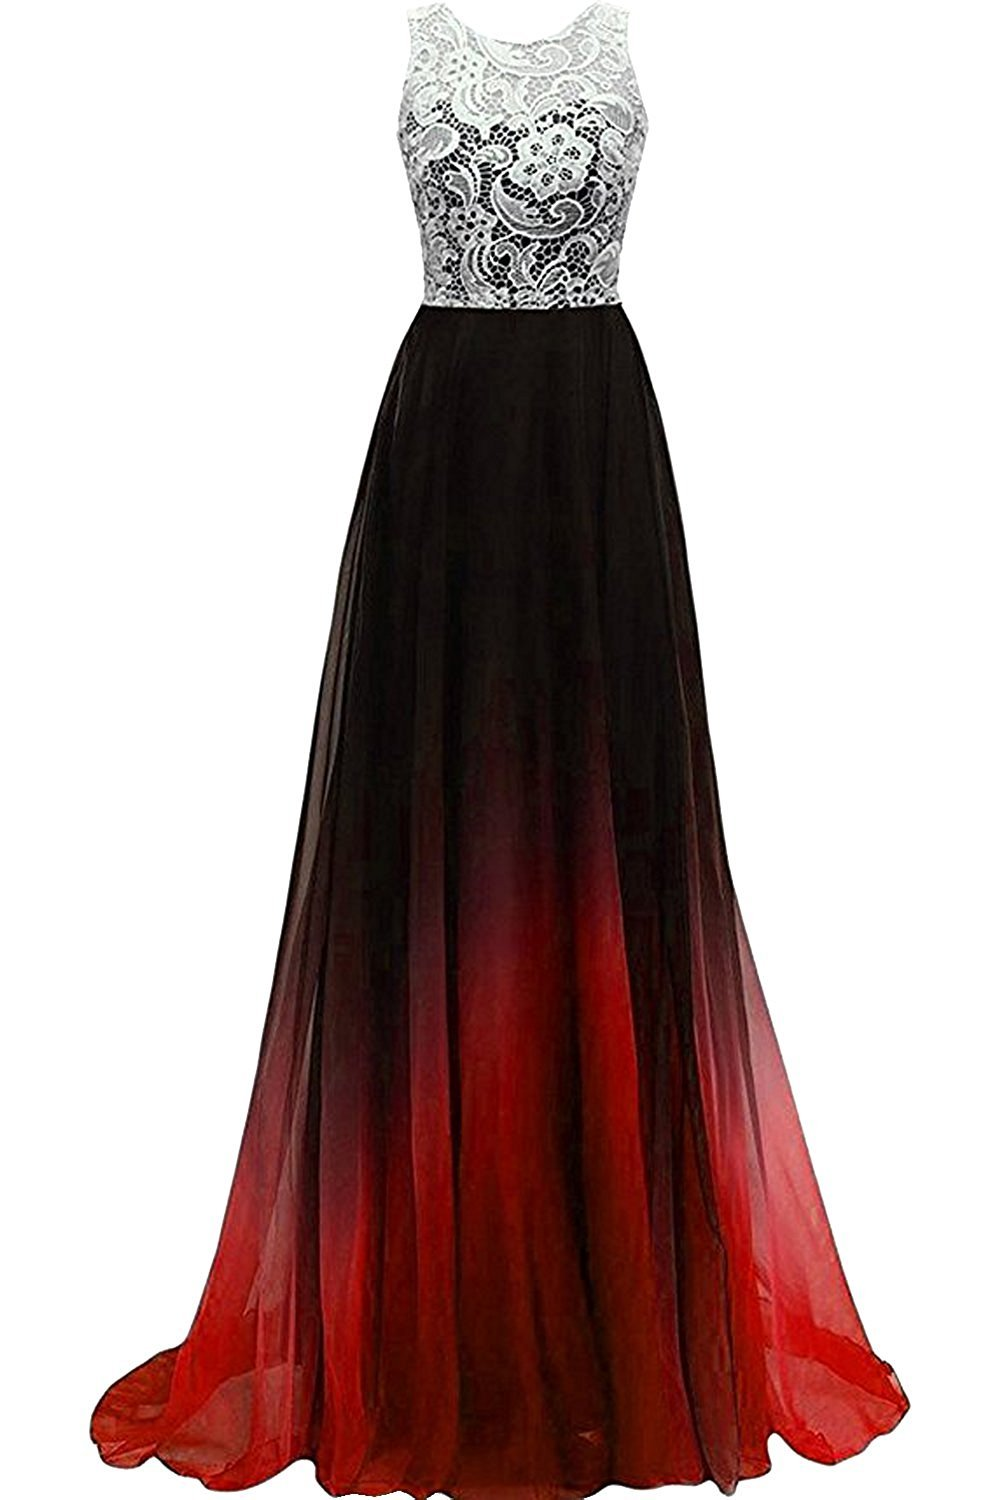 SUNVARY Laceshe Women's Colorful Gradient Prom Gown Long Sleeveless Chiffon Bridesmaid Formal Dresses